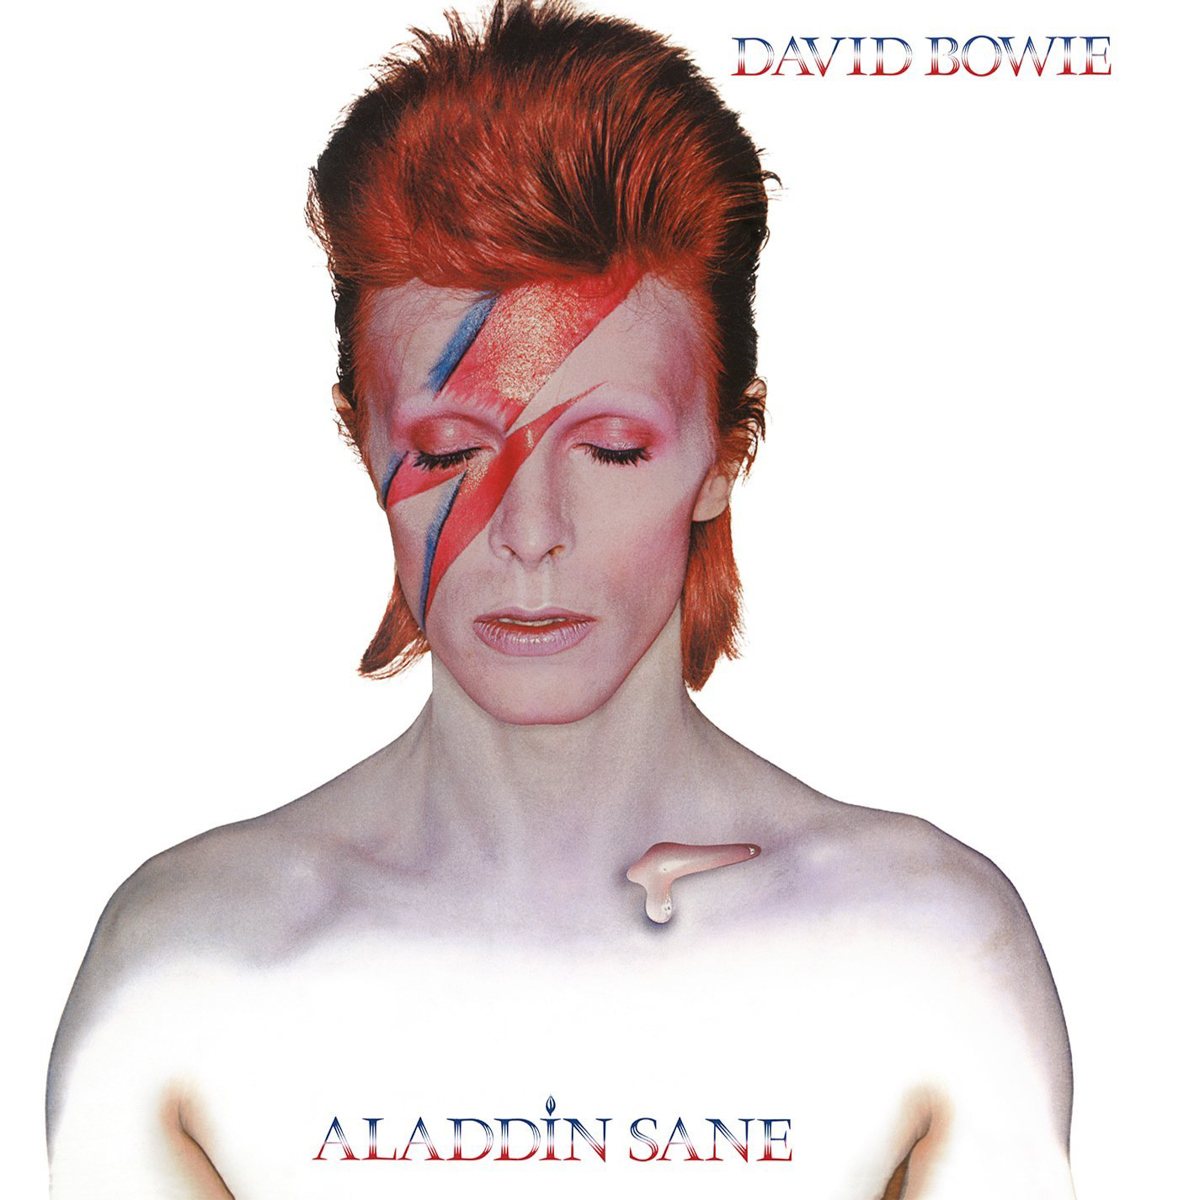 Histoire d'une photo # 9 : Aladdin sane (D. BOWIE) de B. DUFFY ; L'album cover artwork.